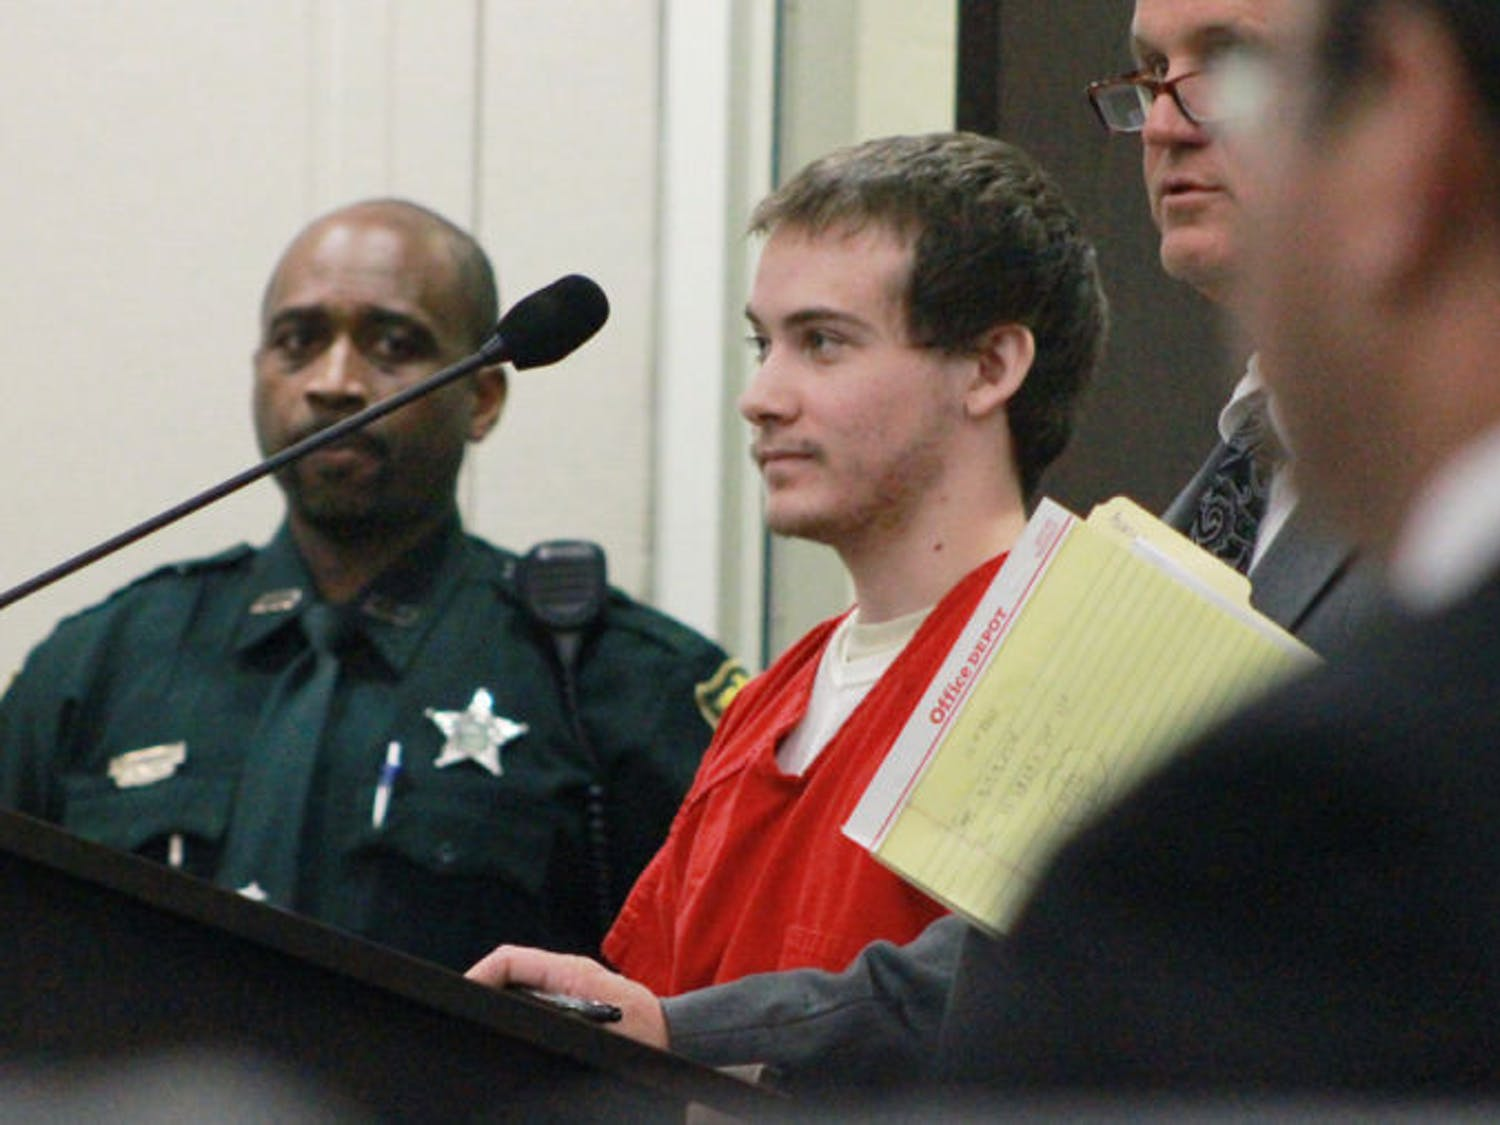 Pedro Bravo stands at a case management hearing at the Alachua County Courthouse on Tuesday. The Florida Department of Law Enforcement will release more evidence collected during last year's Christian Aguilar murder investigation.